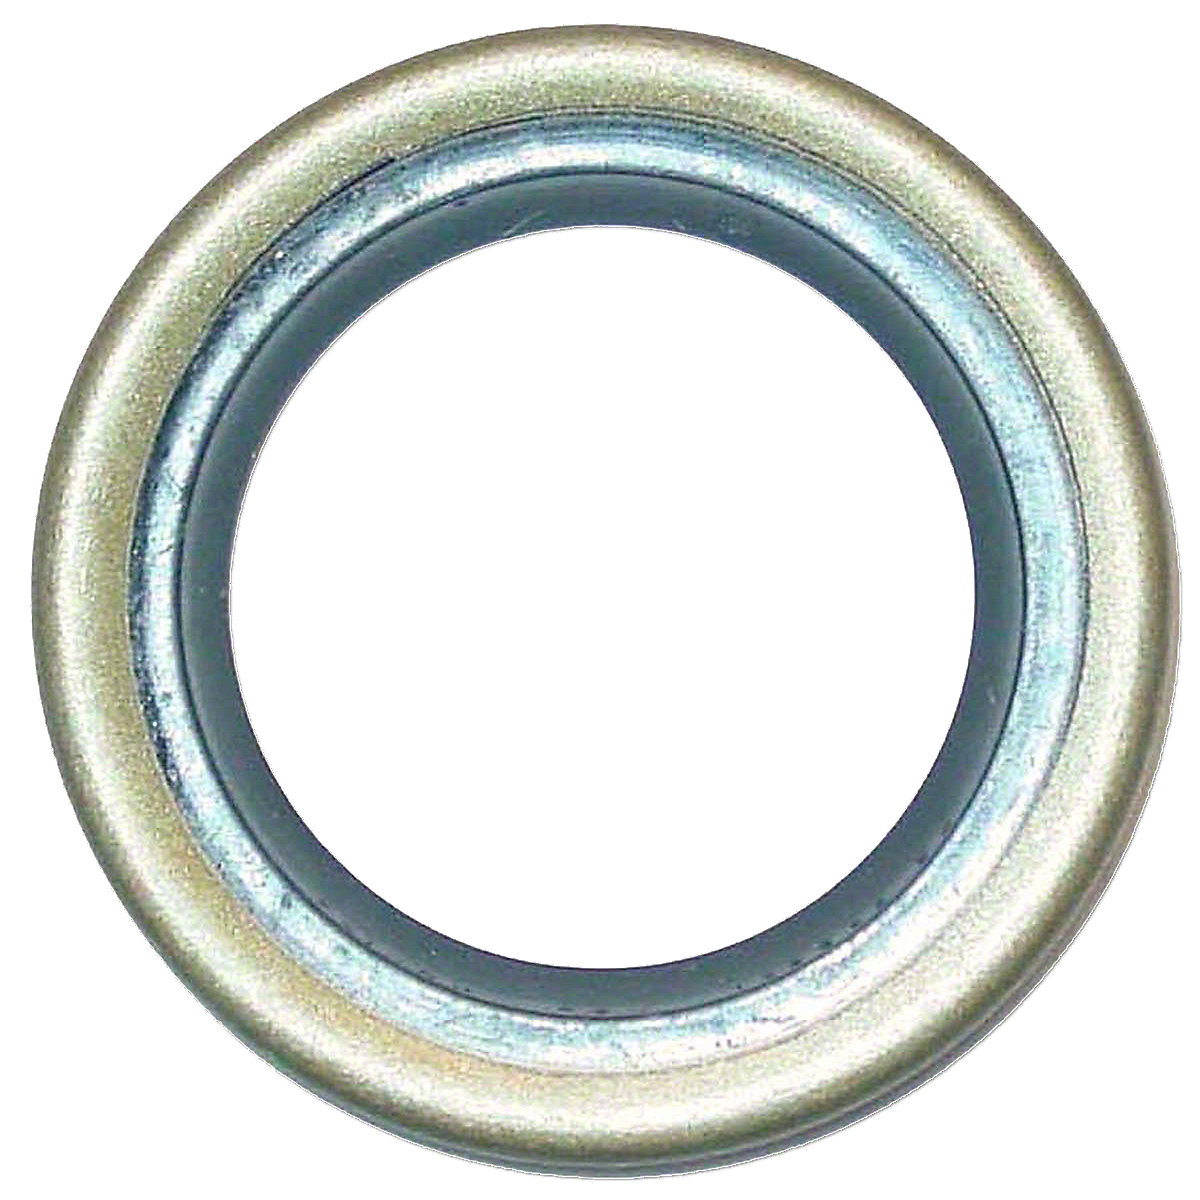 Transmission Input Shaft Seal For Allis Chalmers:  7010, 7020, 7040, 7045, 7060, 8010, 8030, 8050, 8070.